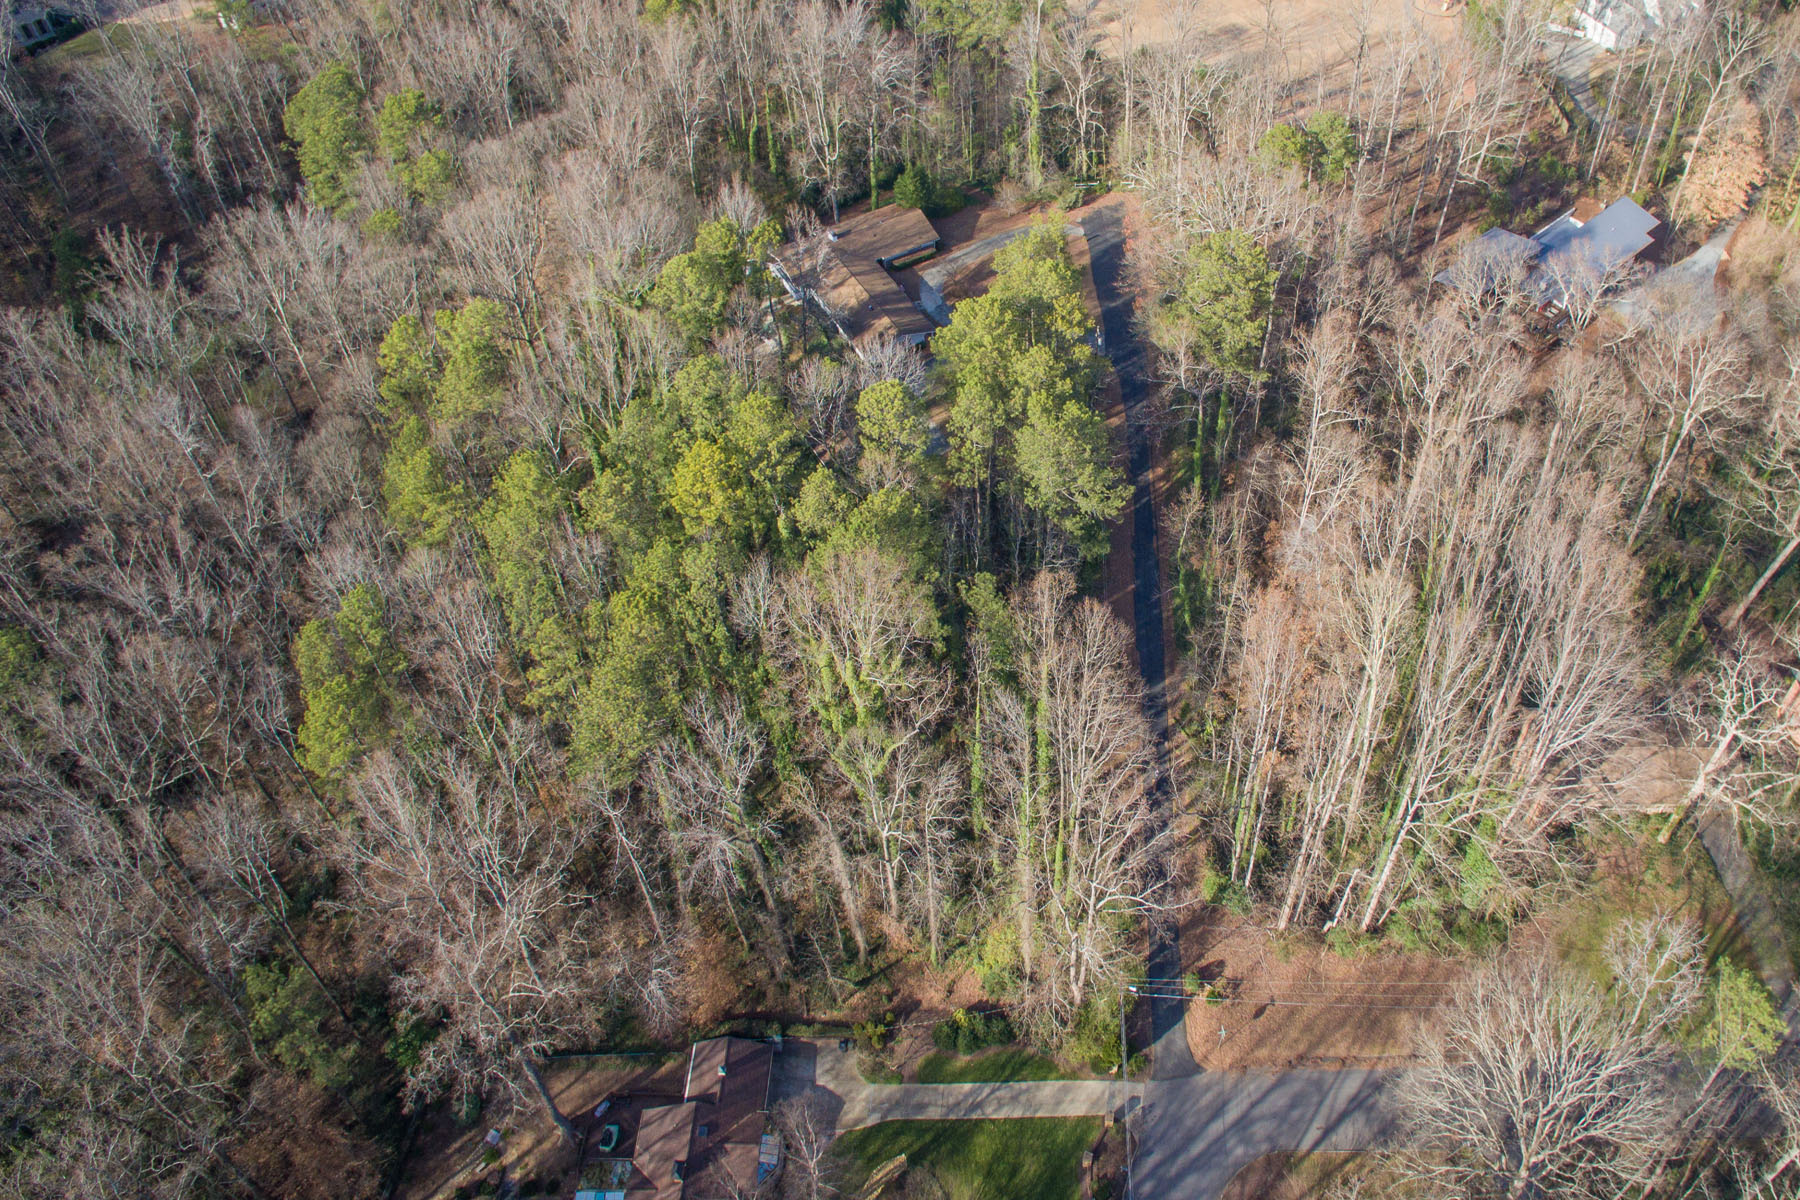 Đất đai vì Bán tại +/- 3.5 Acres in Prime Sandy Springs 5240 Timber Trail South NE Sandy Springs, Georgia, 30342 Hoa Kỳ